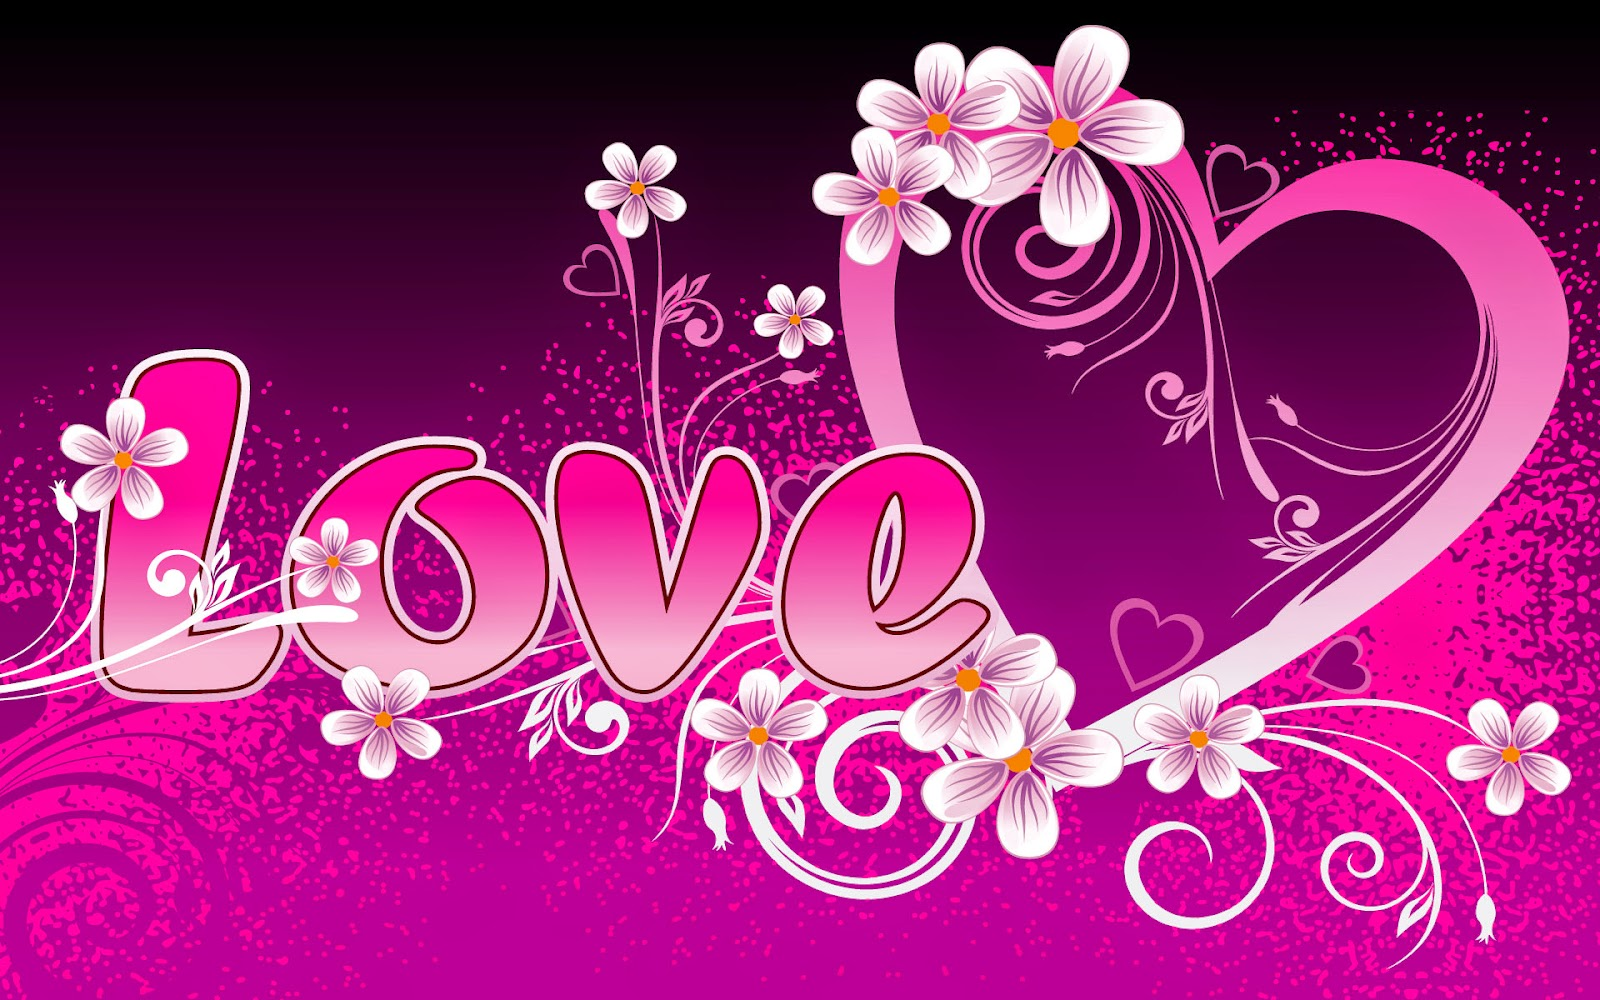 HD WALLPAPER: most beautiful love wallpapers(High Definition) High Quality Desktop Wallpapers